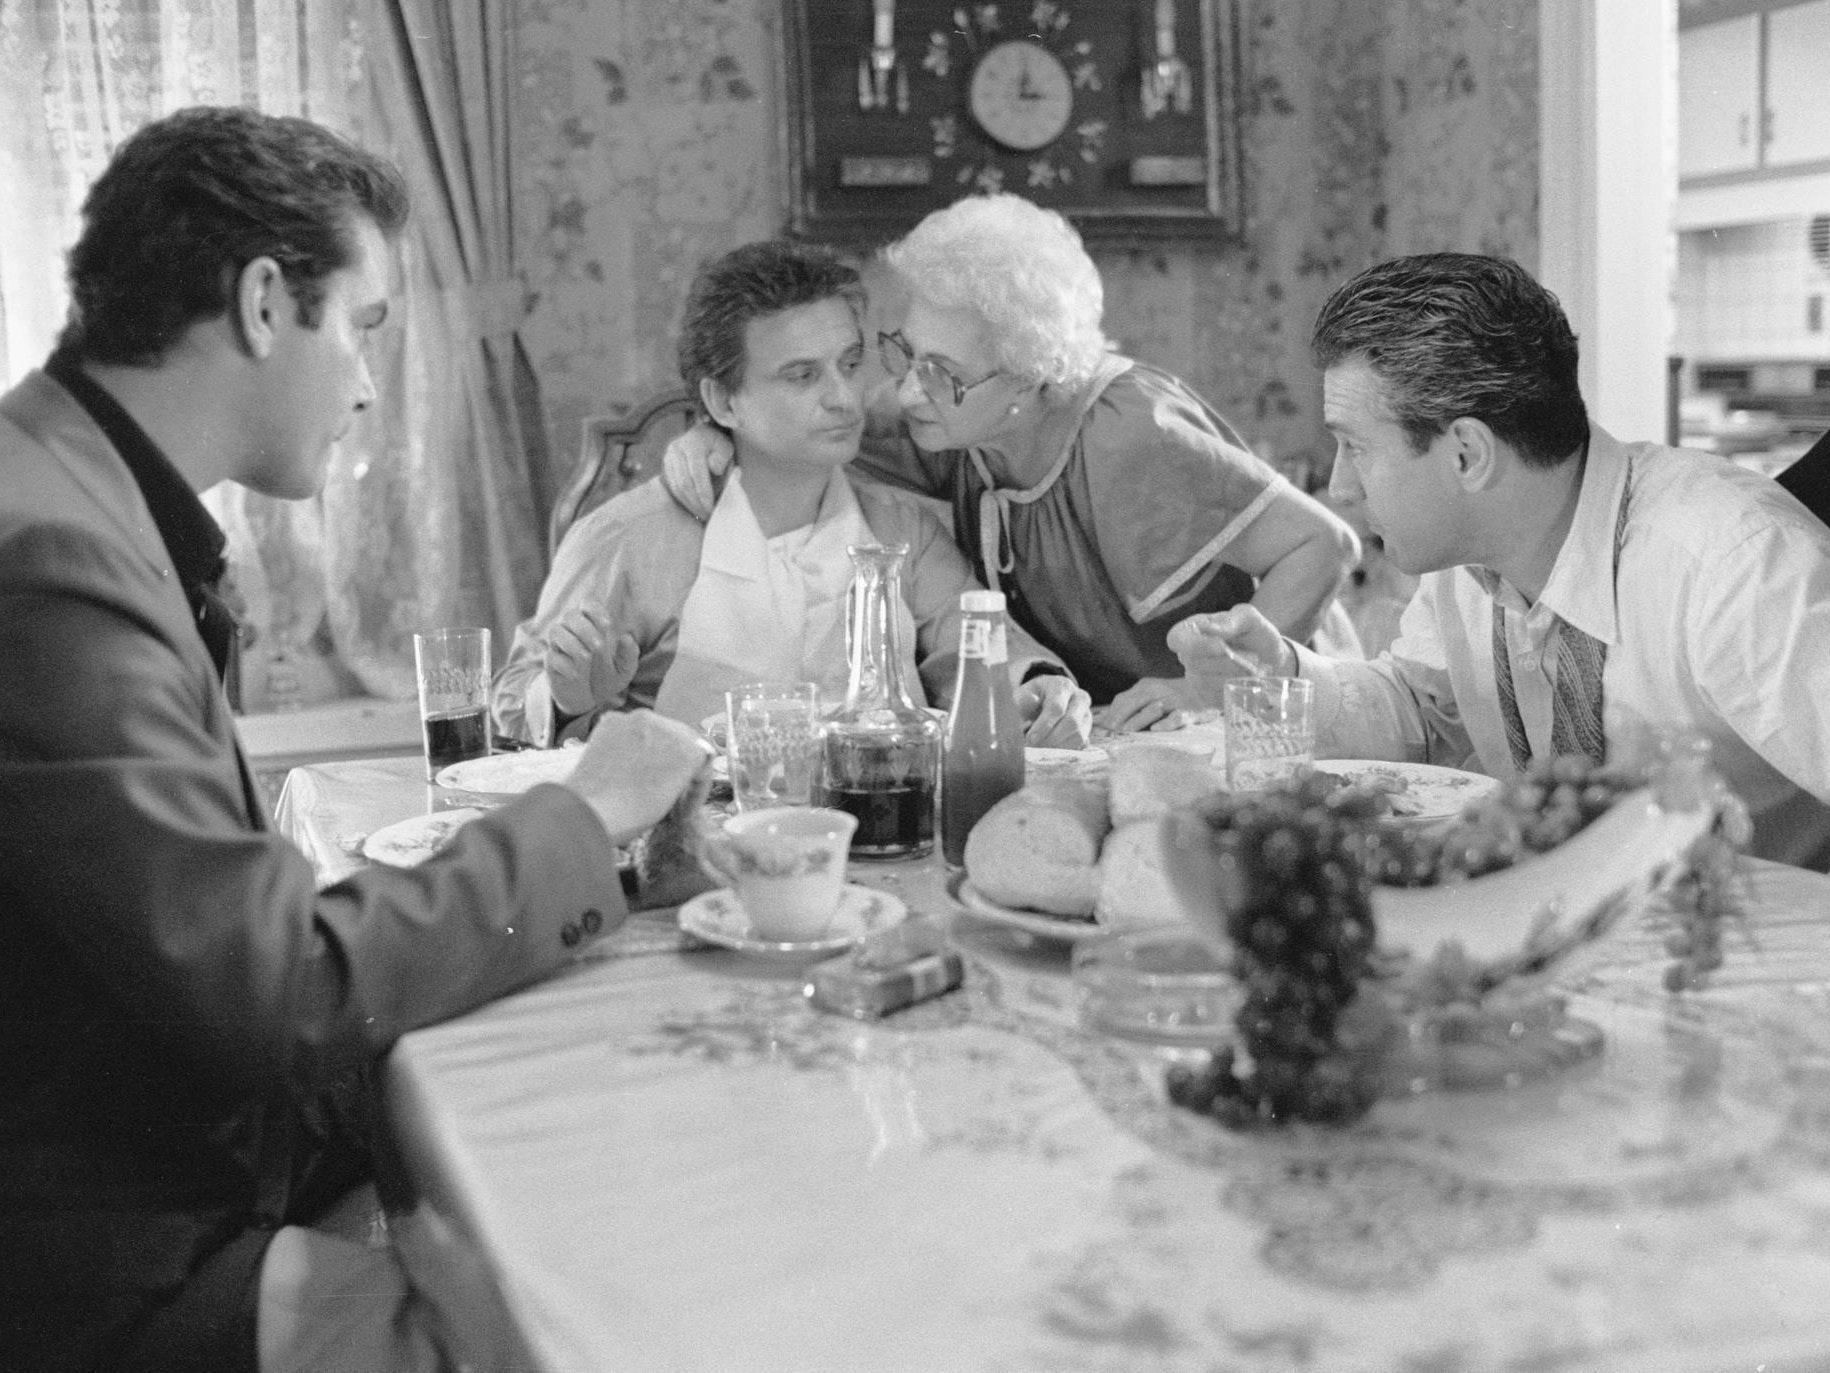 Get Into the Thanksgiving Spirit With These 5 Movie Dinner Scenes